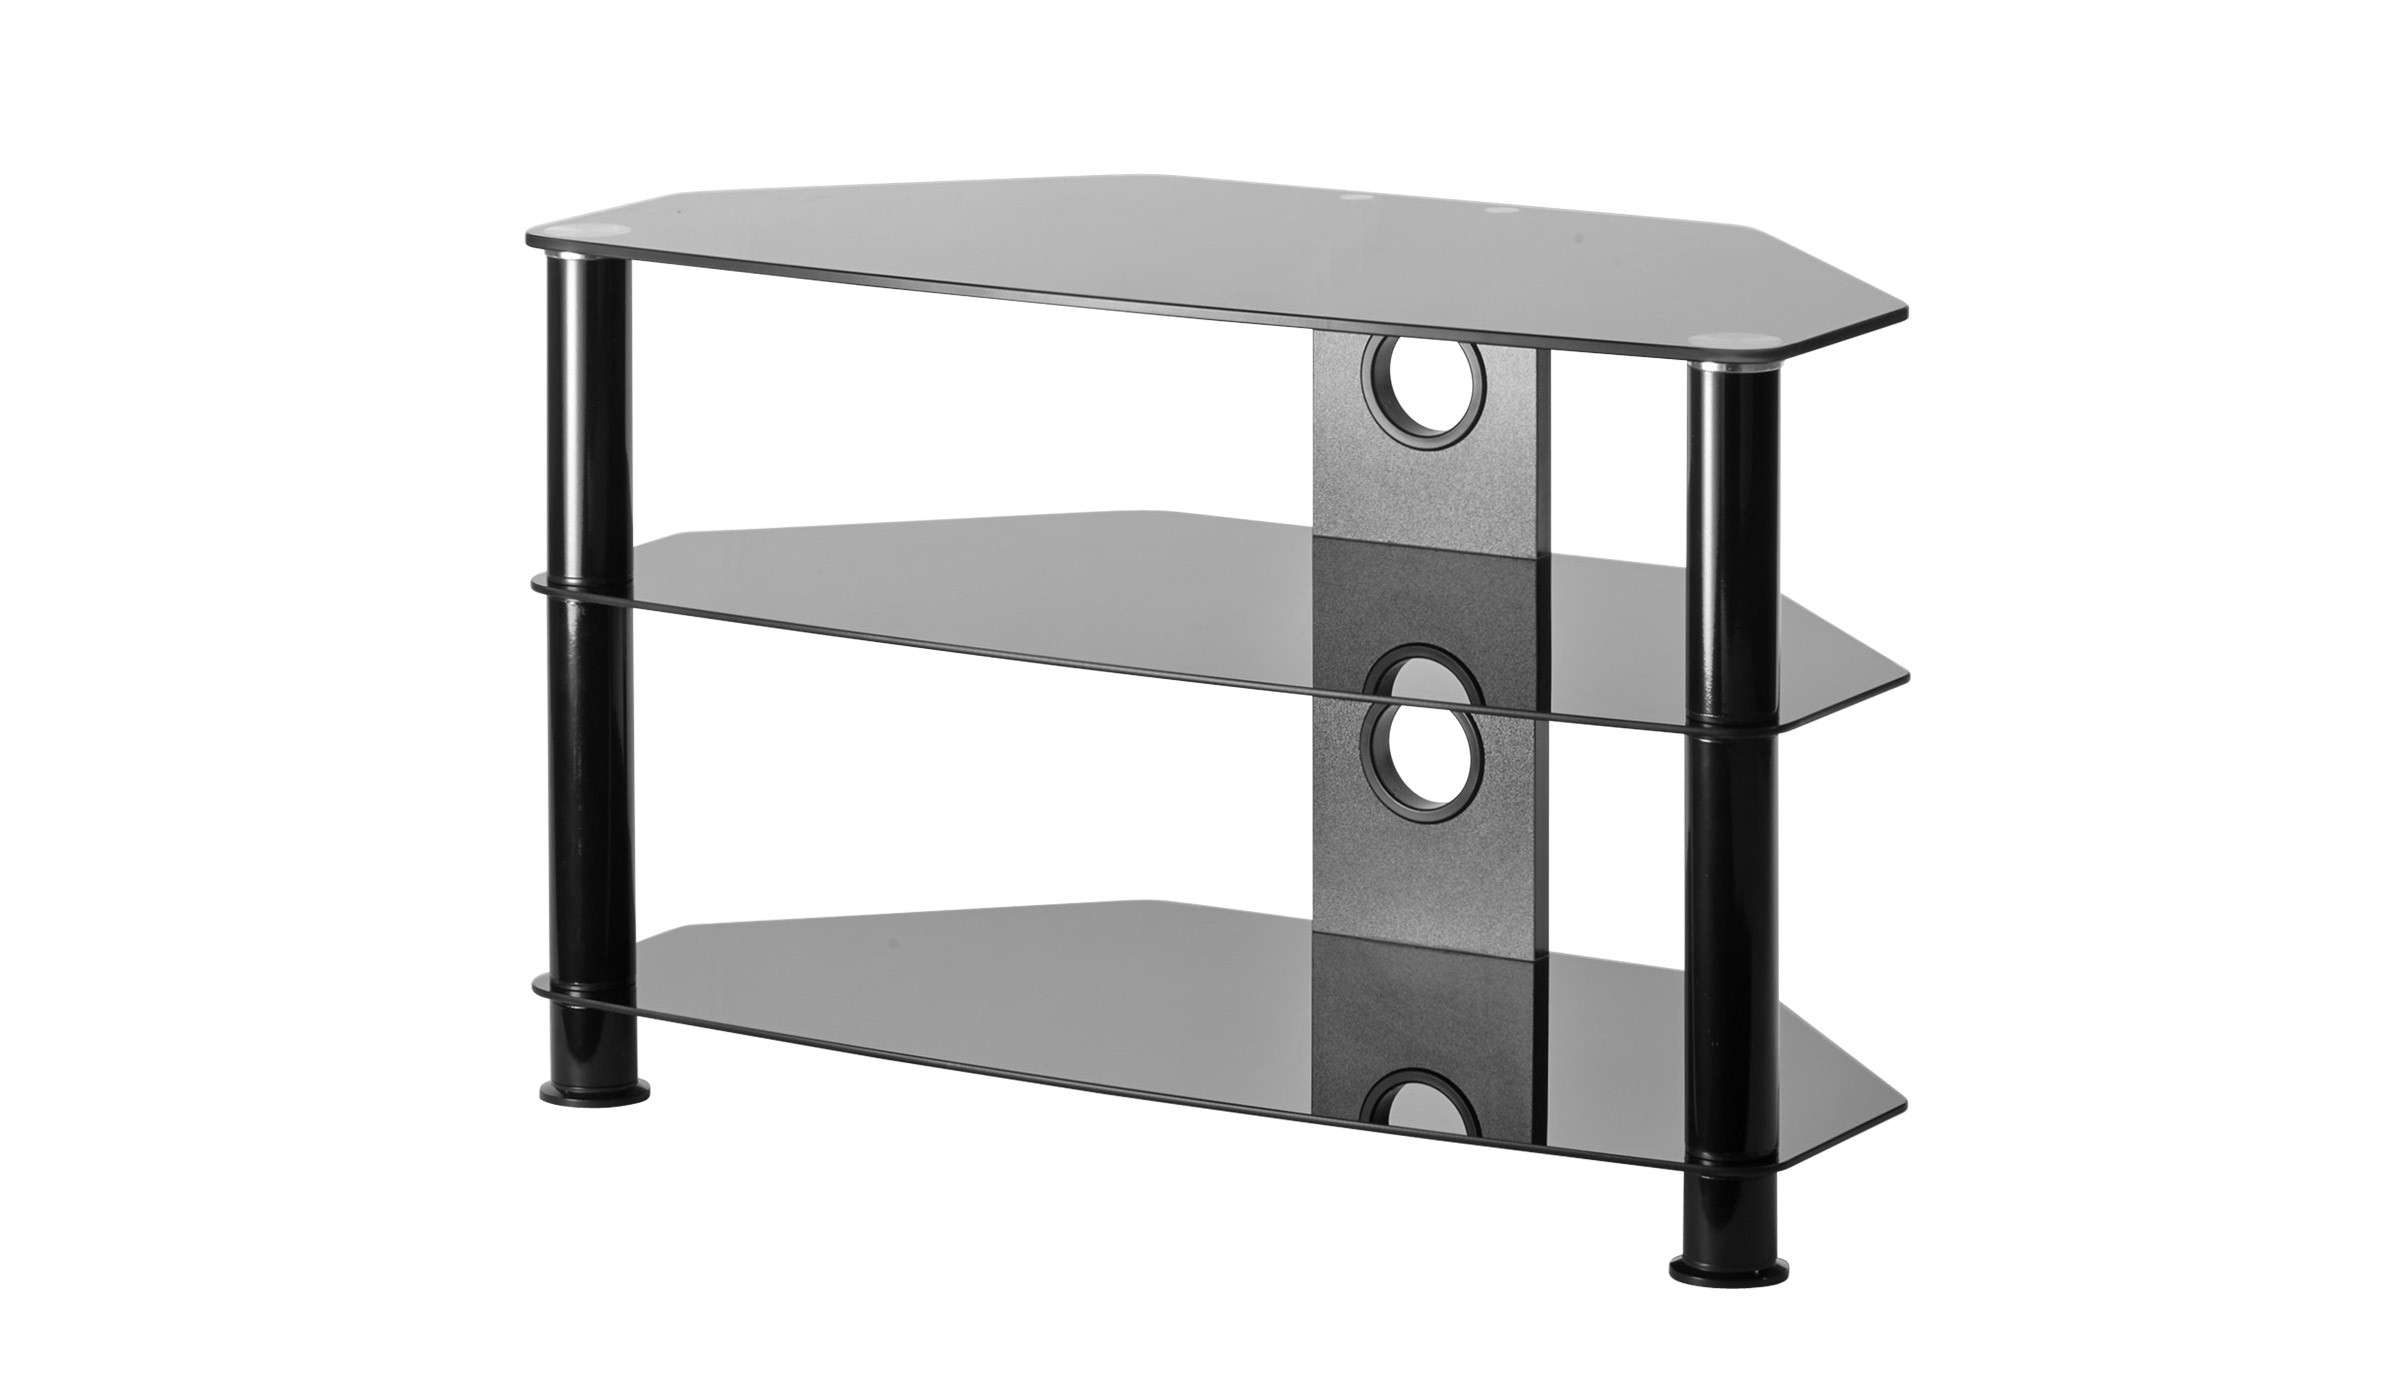 Black Glass Corner Tv Stand Up To 37 Inch Tv | Mmt Db800 In Black Glass Tv Stands (View 6 of 15)